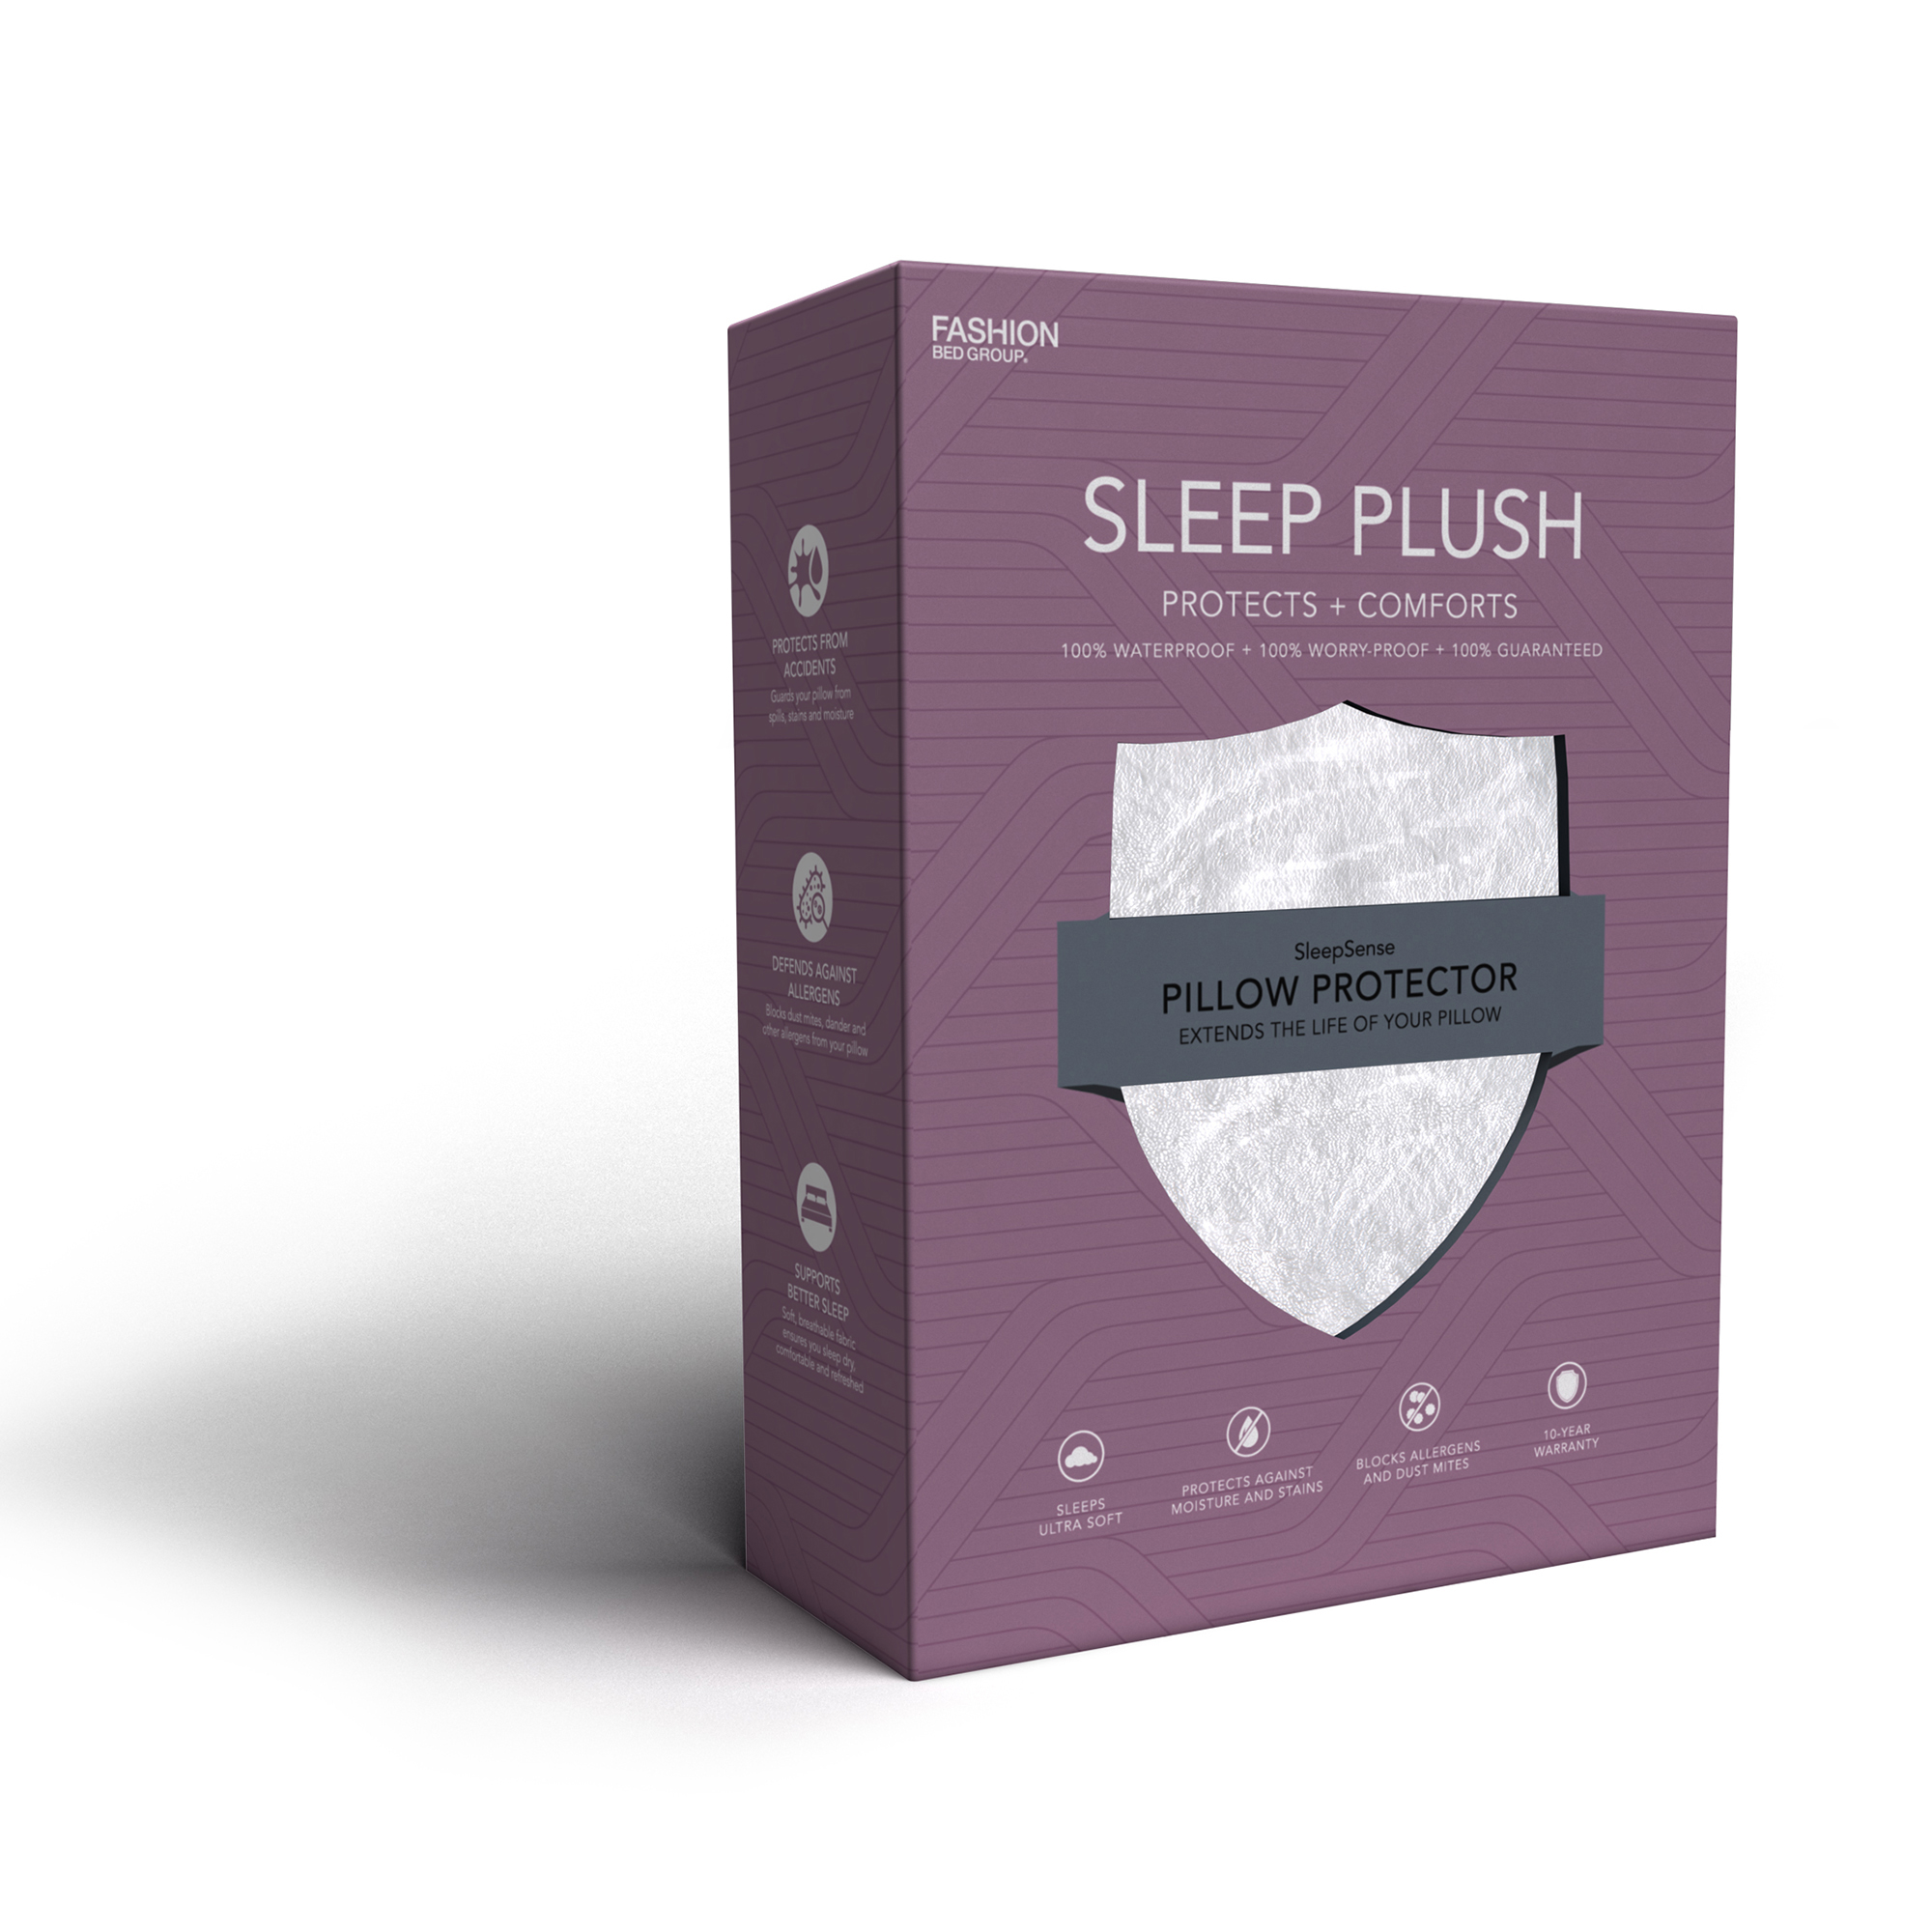 Sleep Plush Pillow Protector with Ultra-Soft and Waterproof Fabric, Standard   Queen by Fashion Bed Group